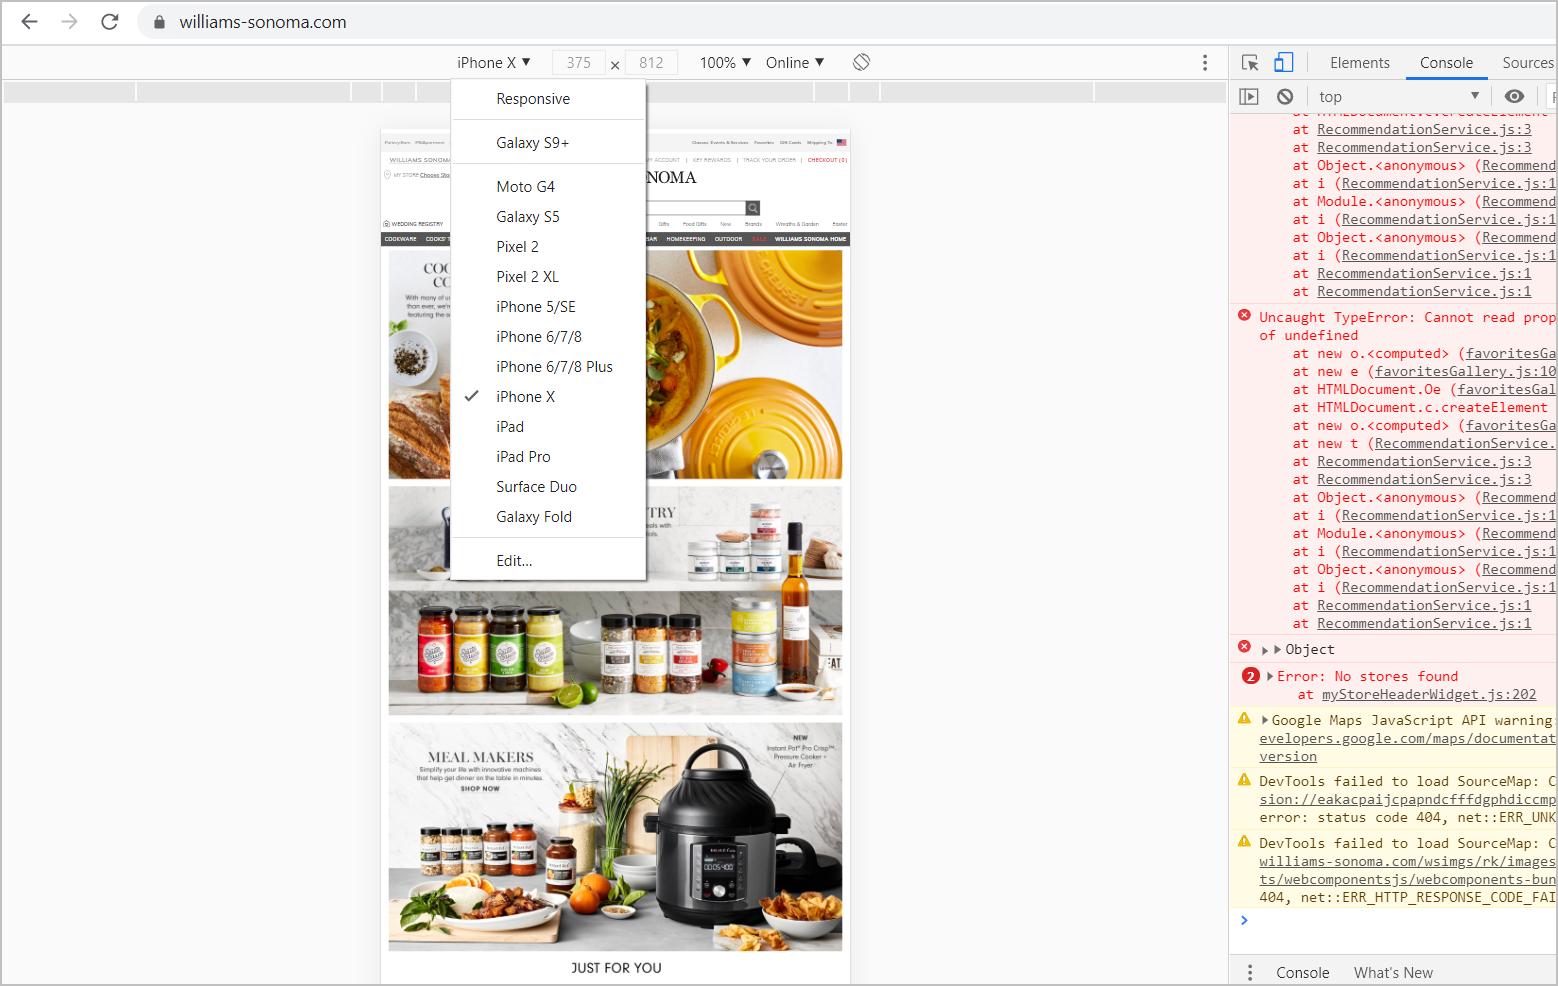 williams-sonoma.com's homepage viewed through chrome's devtool device mode as a mobile page